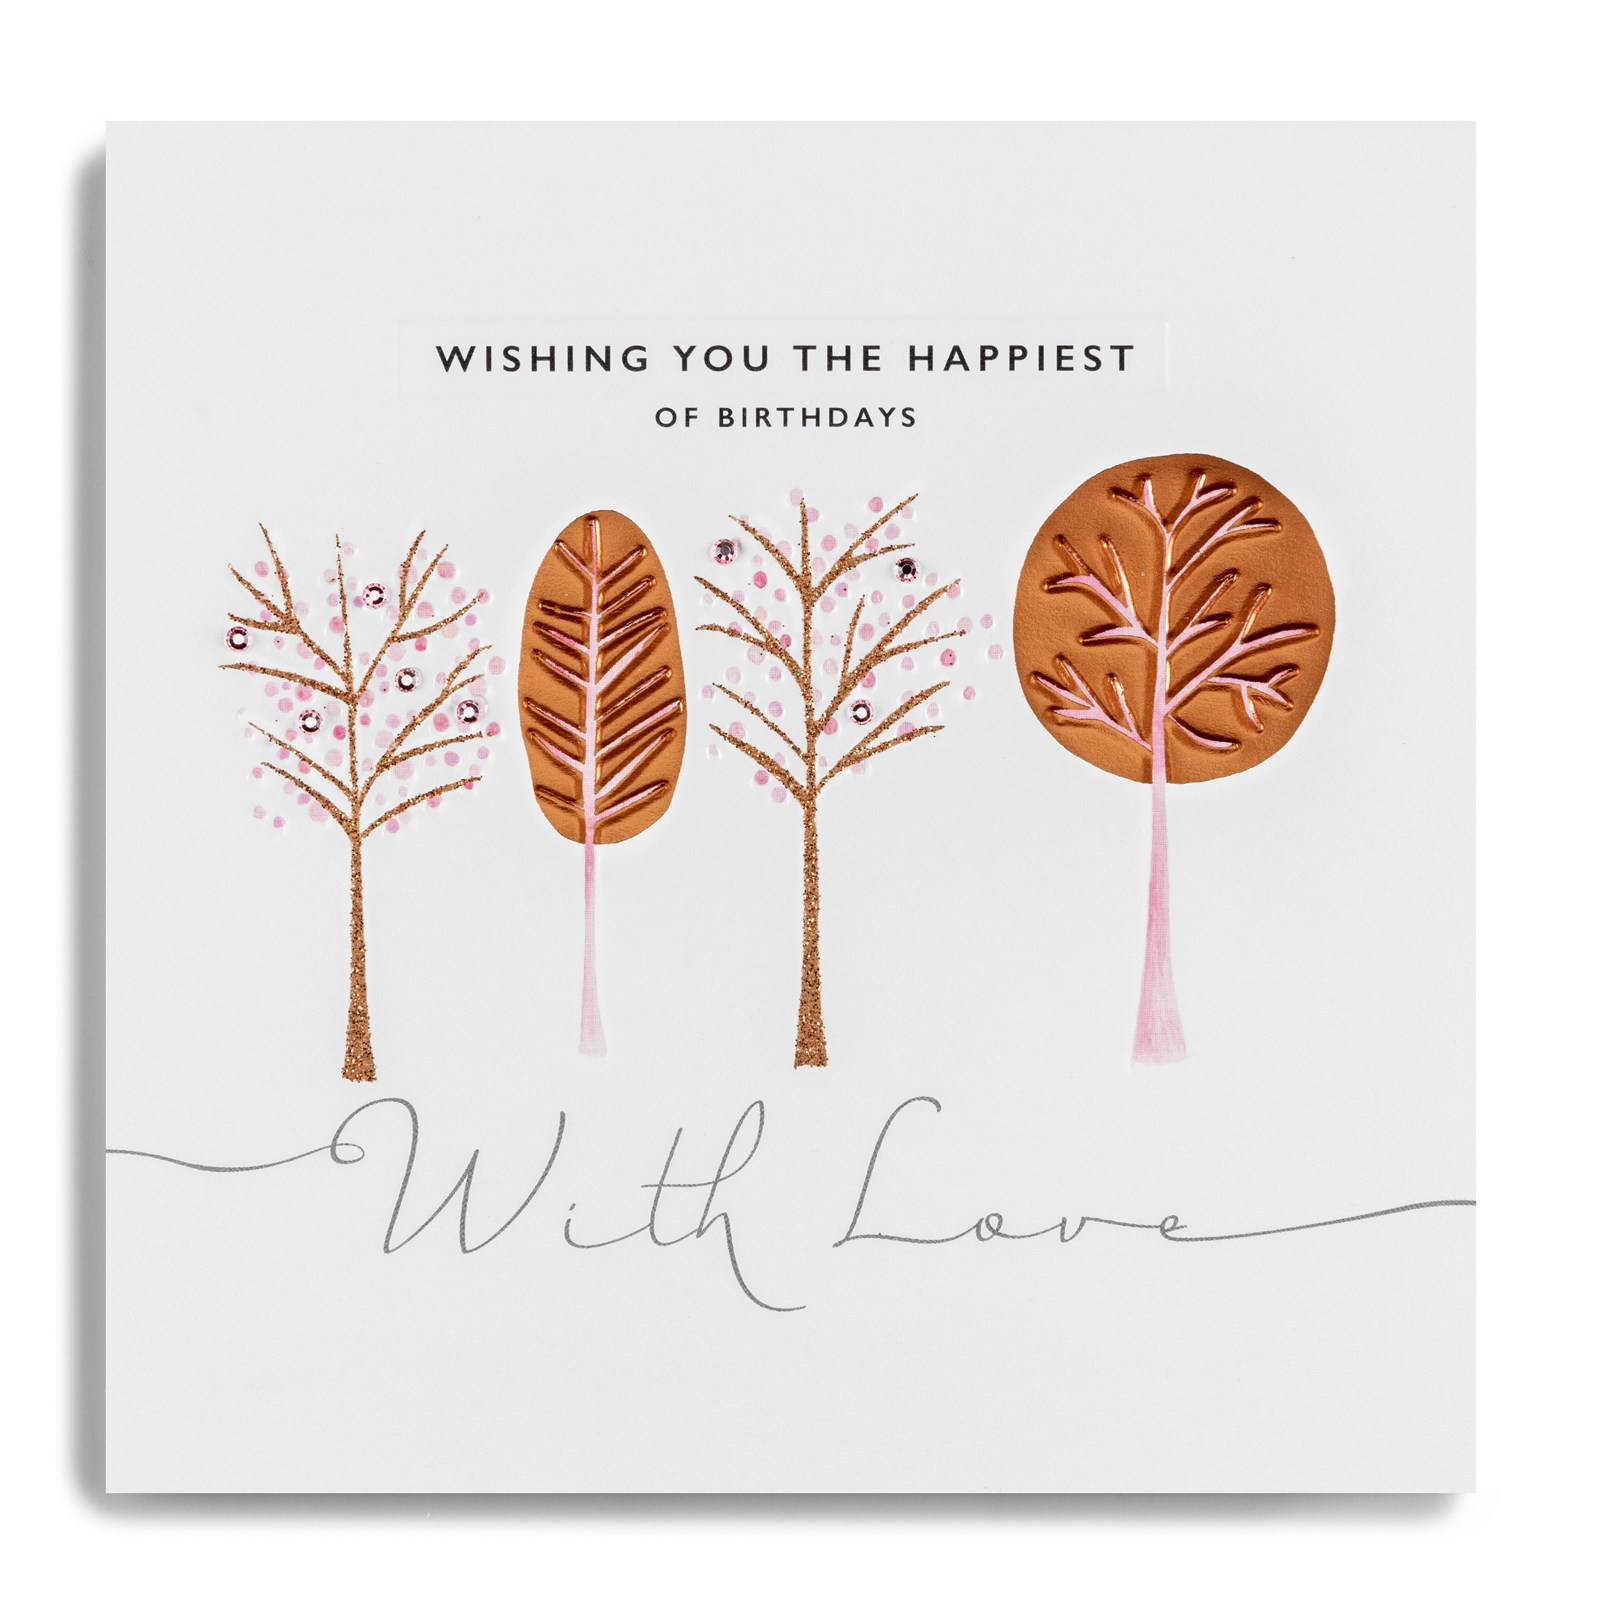 buy LUXURY DELUXE HAND FINISHED CARDS ONLINE FROM KARENZA PAPERIE BIRTHDAY CARDS, HUSBAND, CHILDRENS, ANNIVERSARY,  BOTANTICAL CARDS, GOOD LUCK AT SCHOOL UNI CARDS, JANIE WILSON, MOLLY MAE, CAROLINE GARDNER AND JAMES ELLIS CARDS